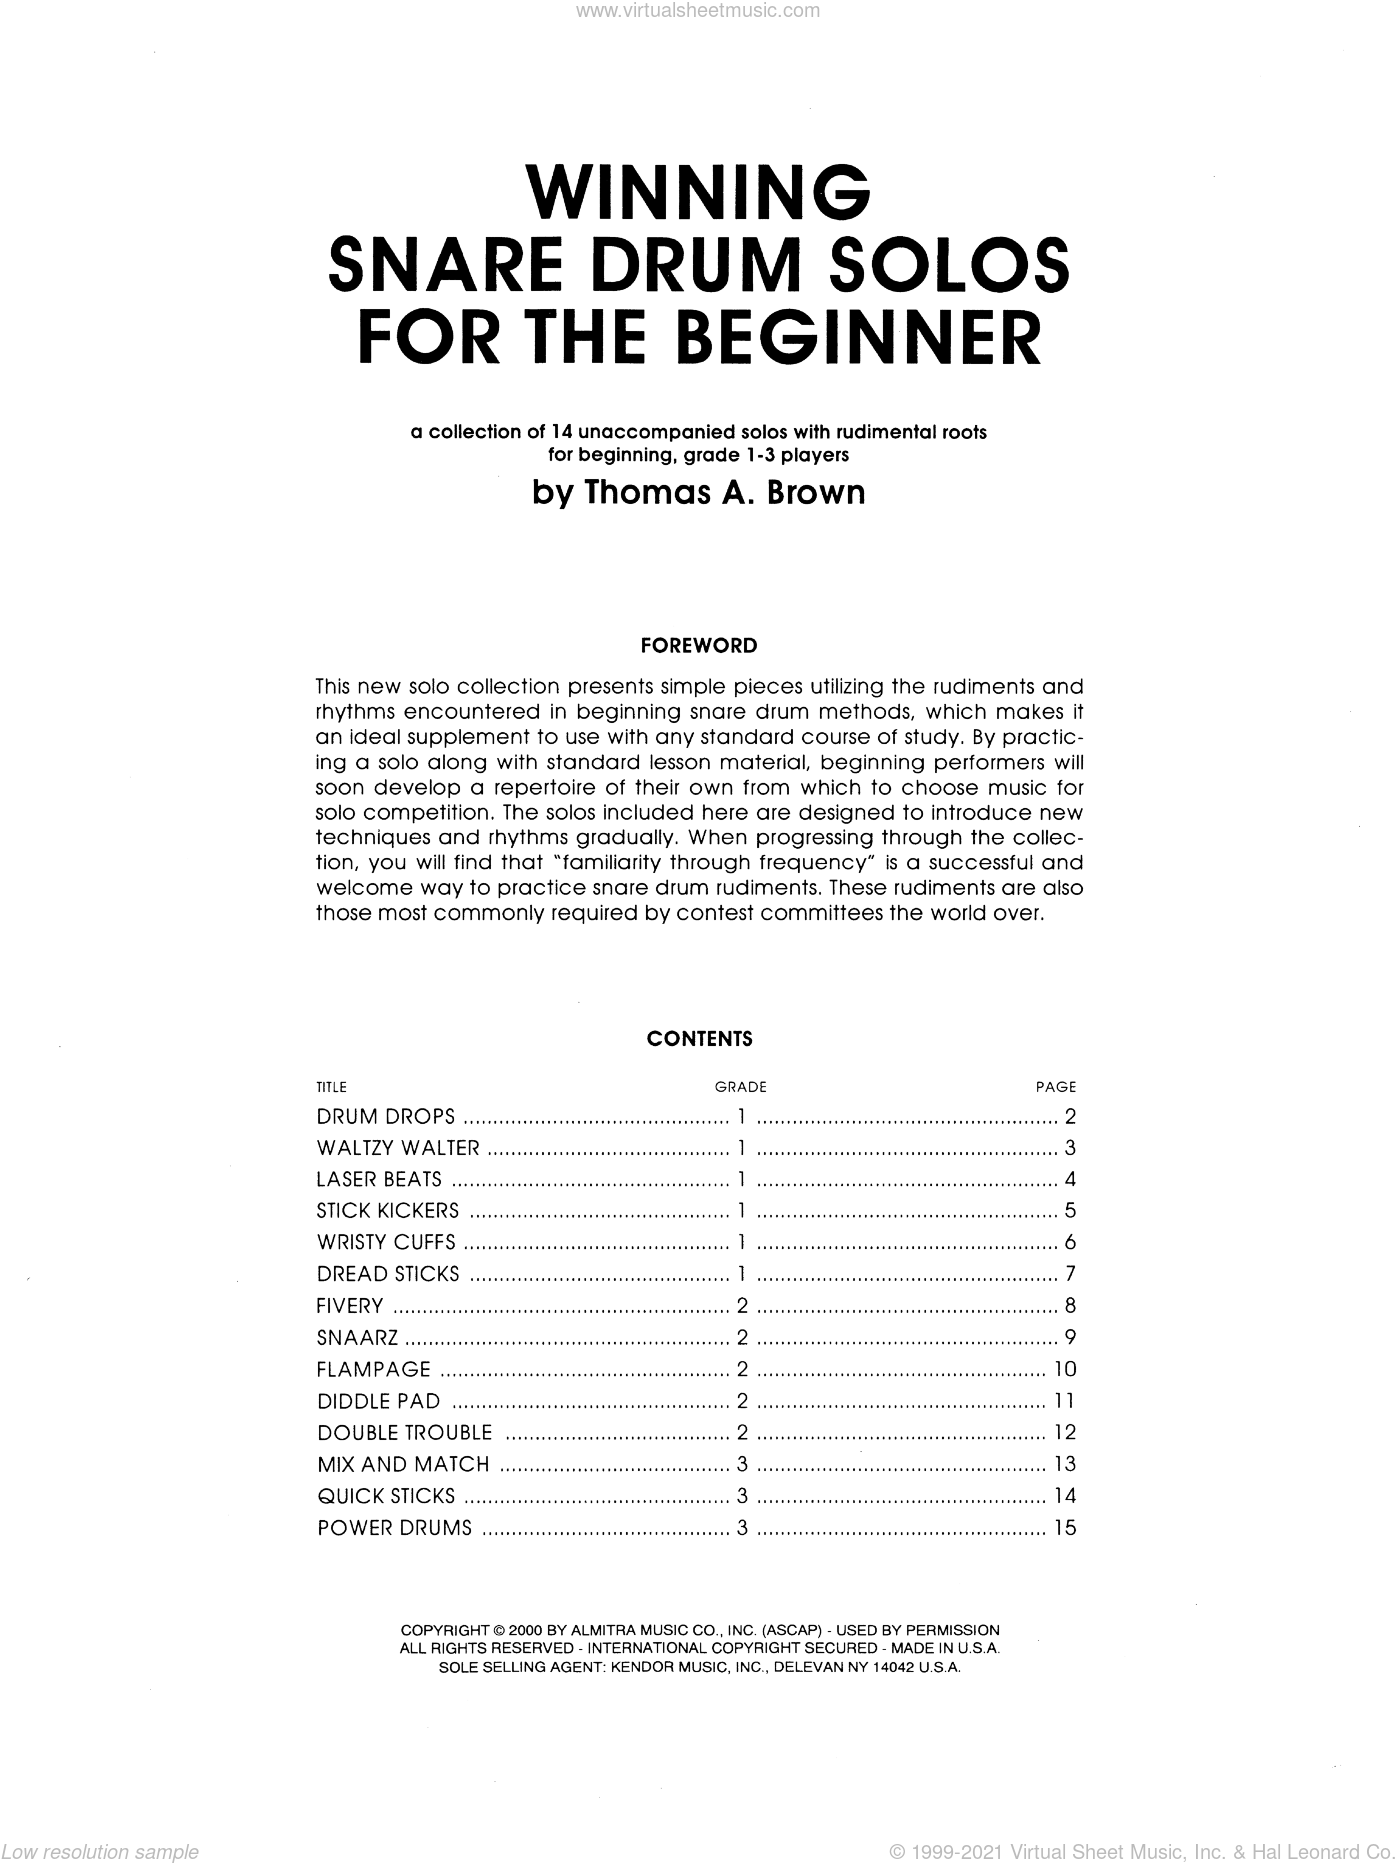 Winning Snare Drum Solos For The Beginner sheet music for percussions by Tom Brown, classical score, intermediate. Score Image Preview.